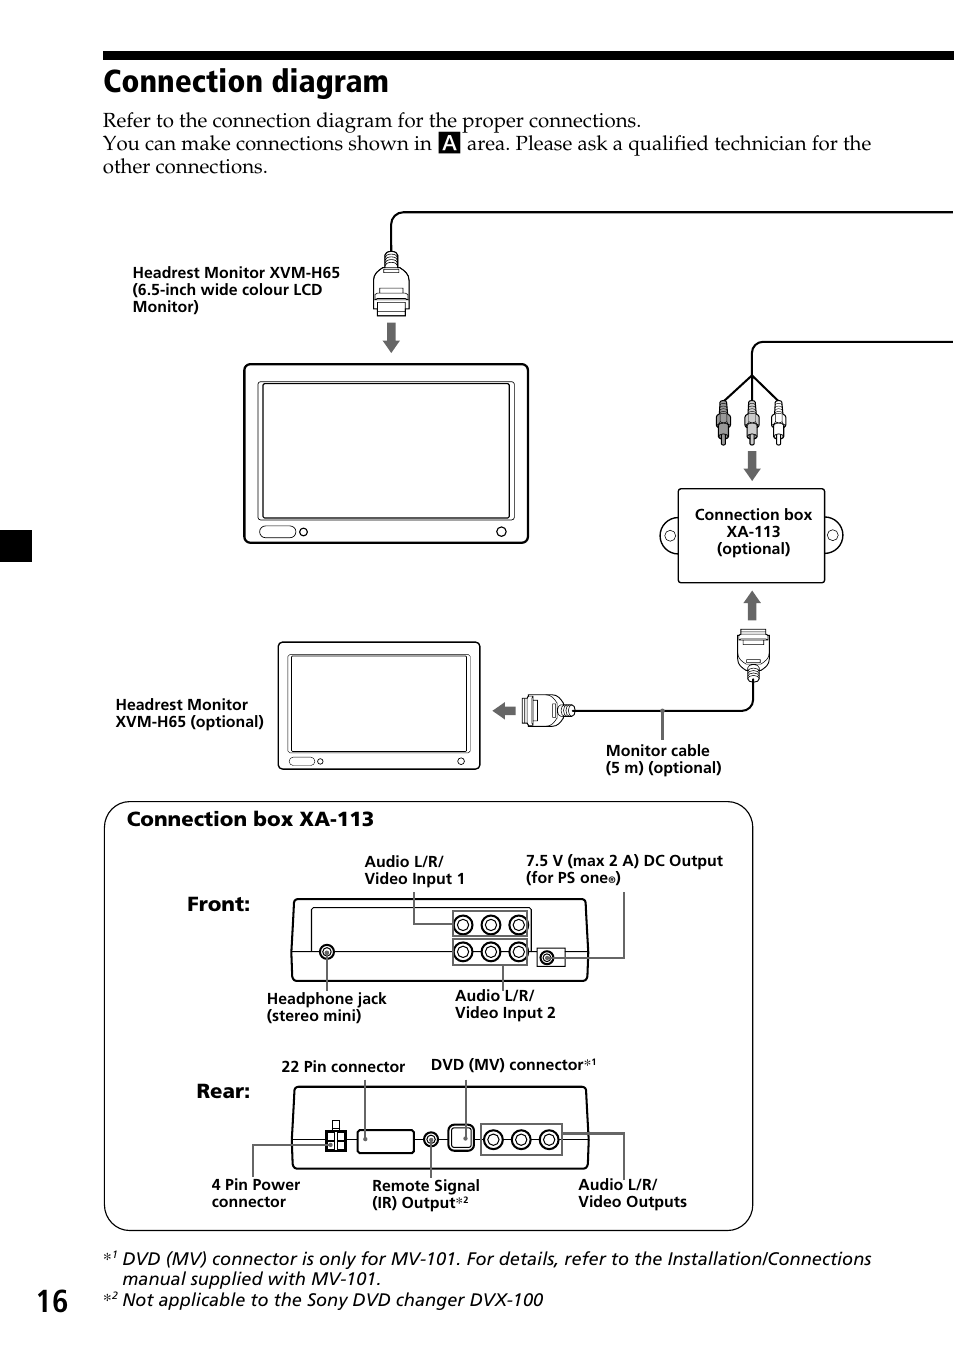 hight resolution of connection diagram 16 connection diagram front connection box xa 113 rear sony xvm h65 user manual page 16 104